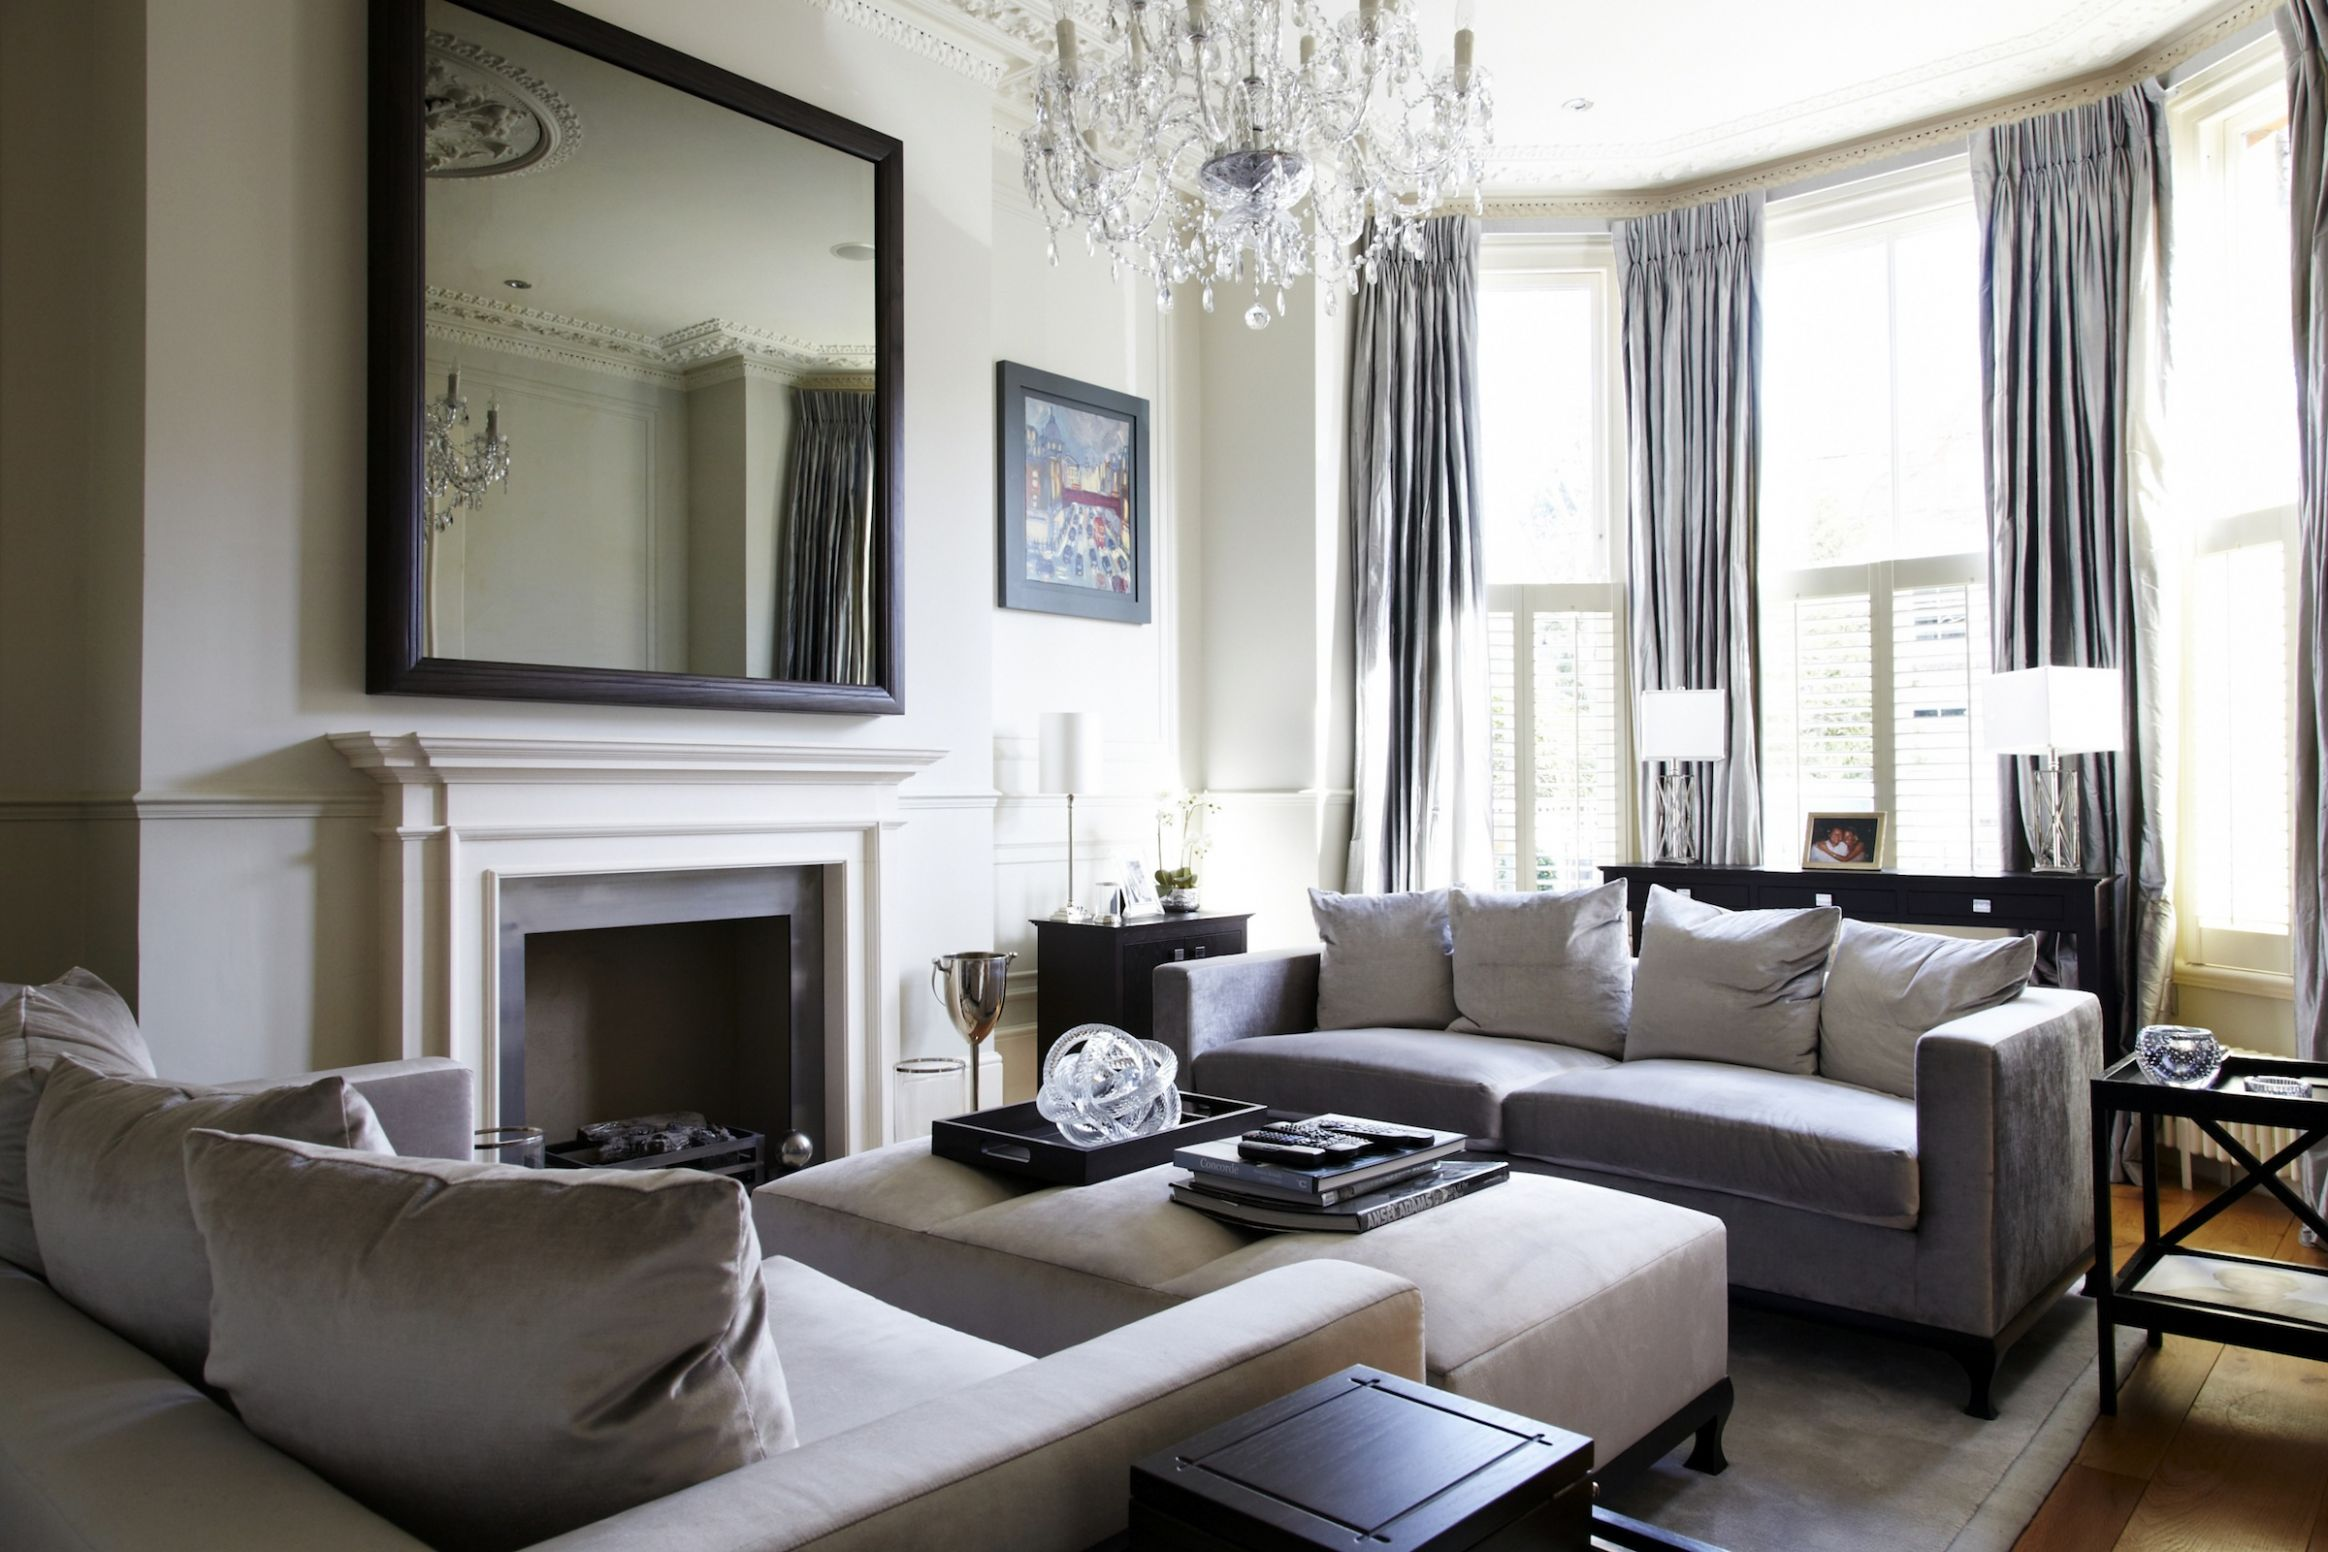 Victorian Chic House With A Modern Twist | Decoholic - dining room ideas for victorian house